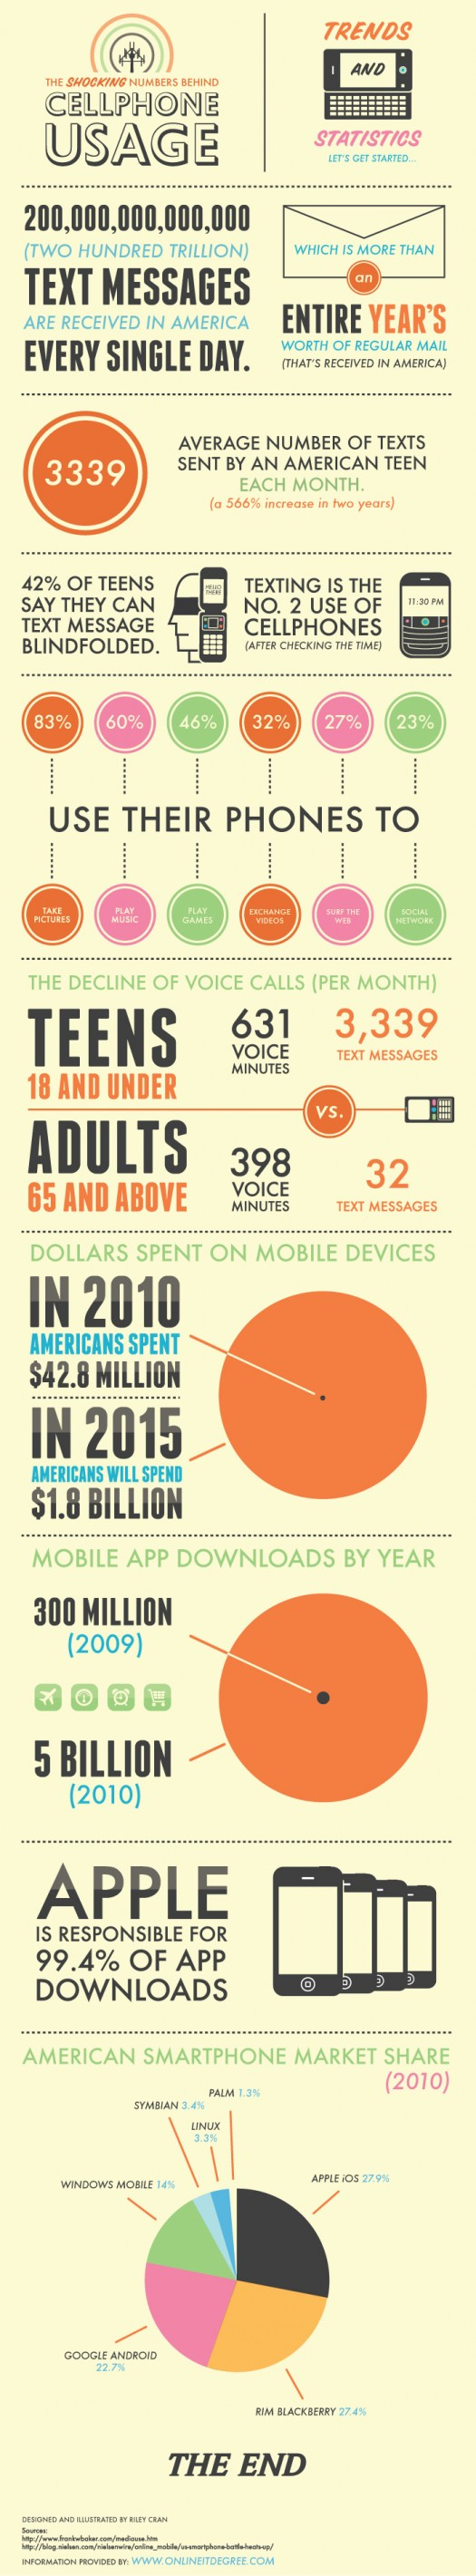 How-We-Use-Our-Phones-525x2842